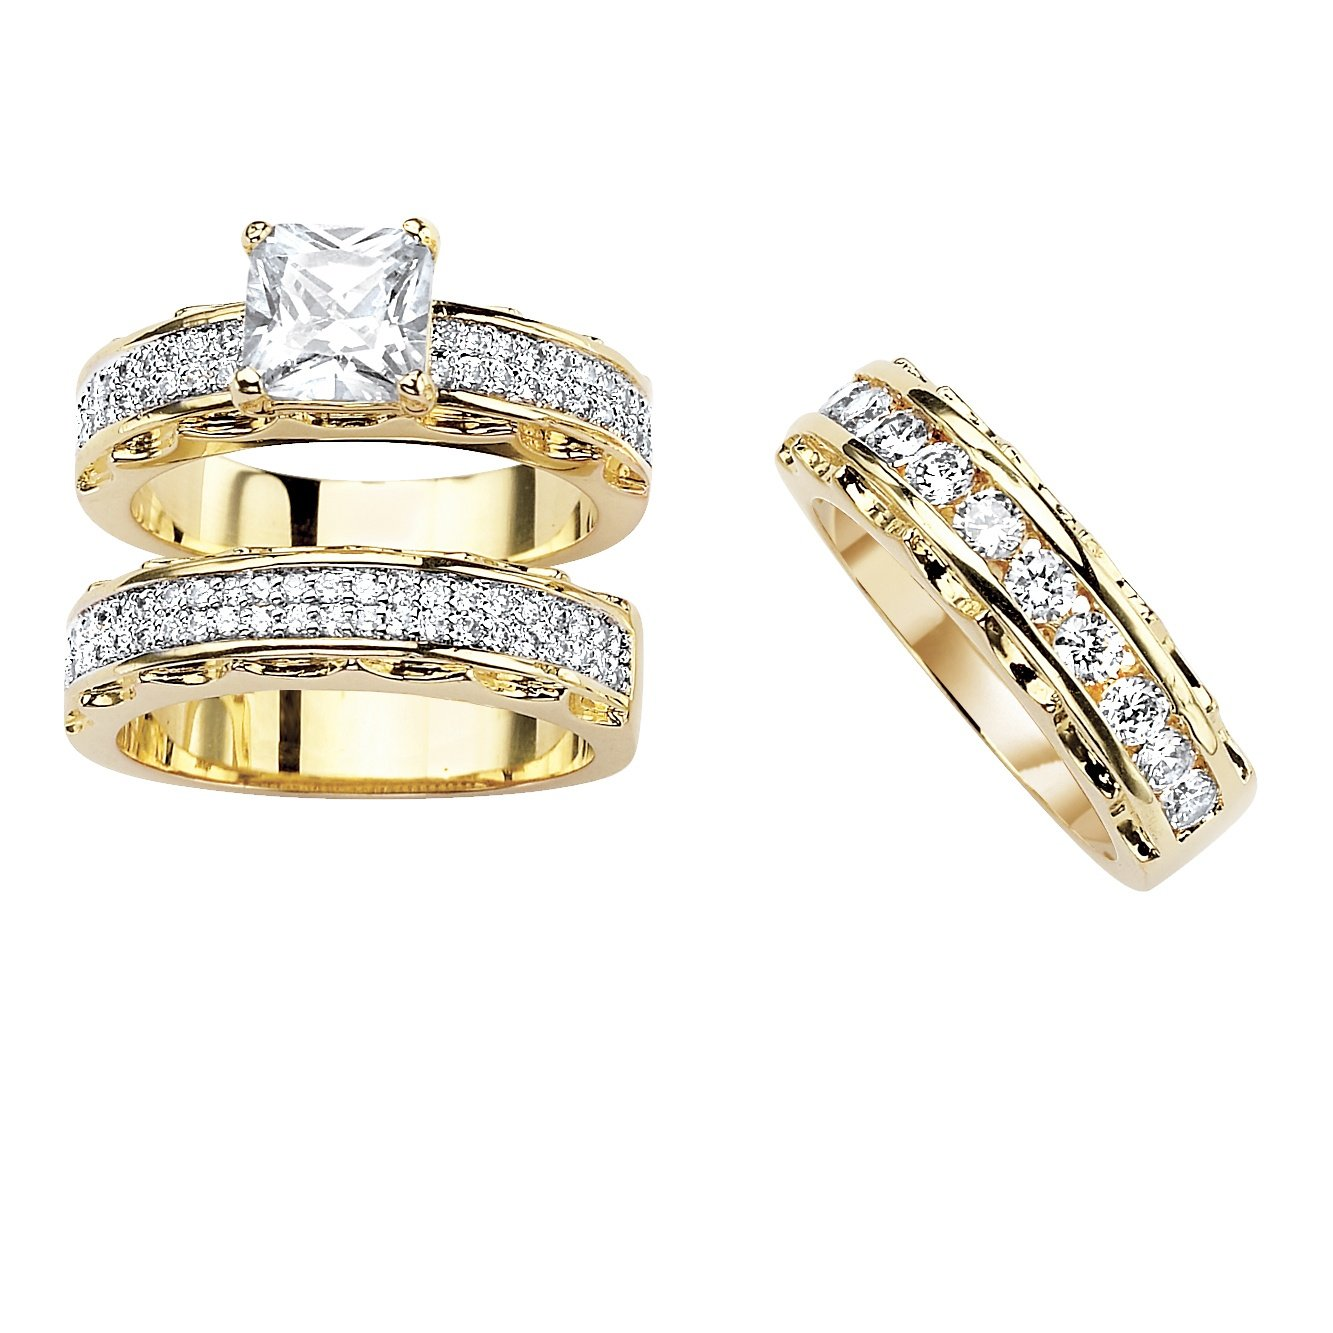 Palm Beach Jewelry Princess-Cut White Cubic Zirconia 14k Gold-Plated 3-Piece Channel Bridal Ring Set Size 7